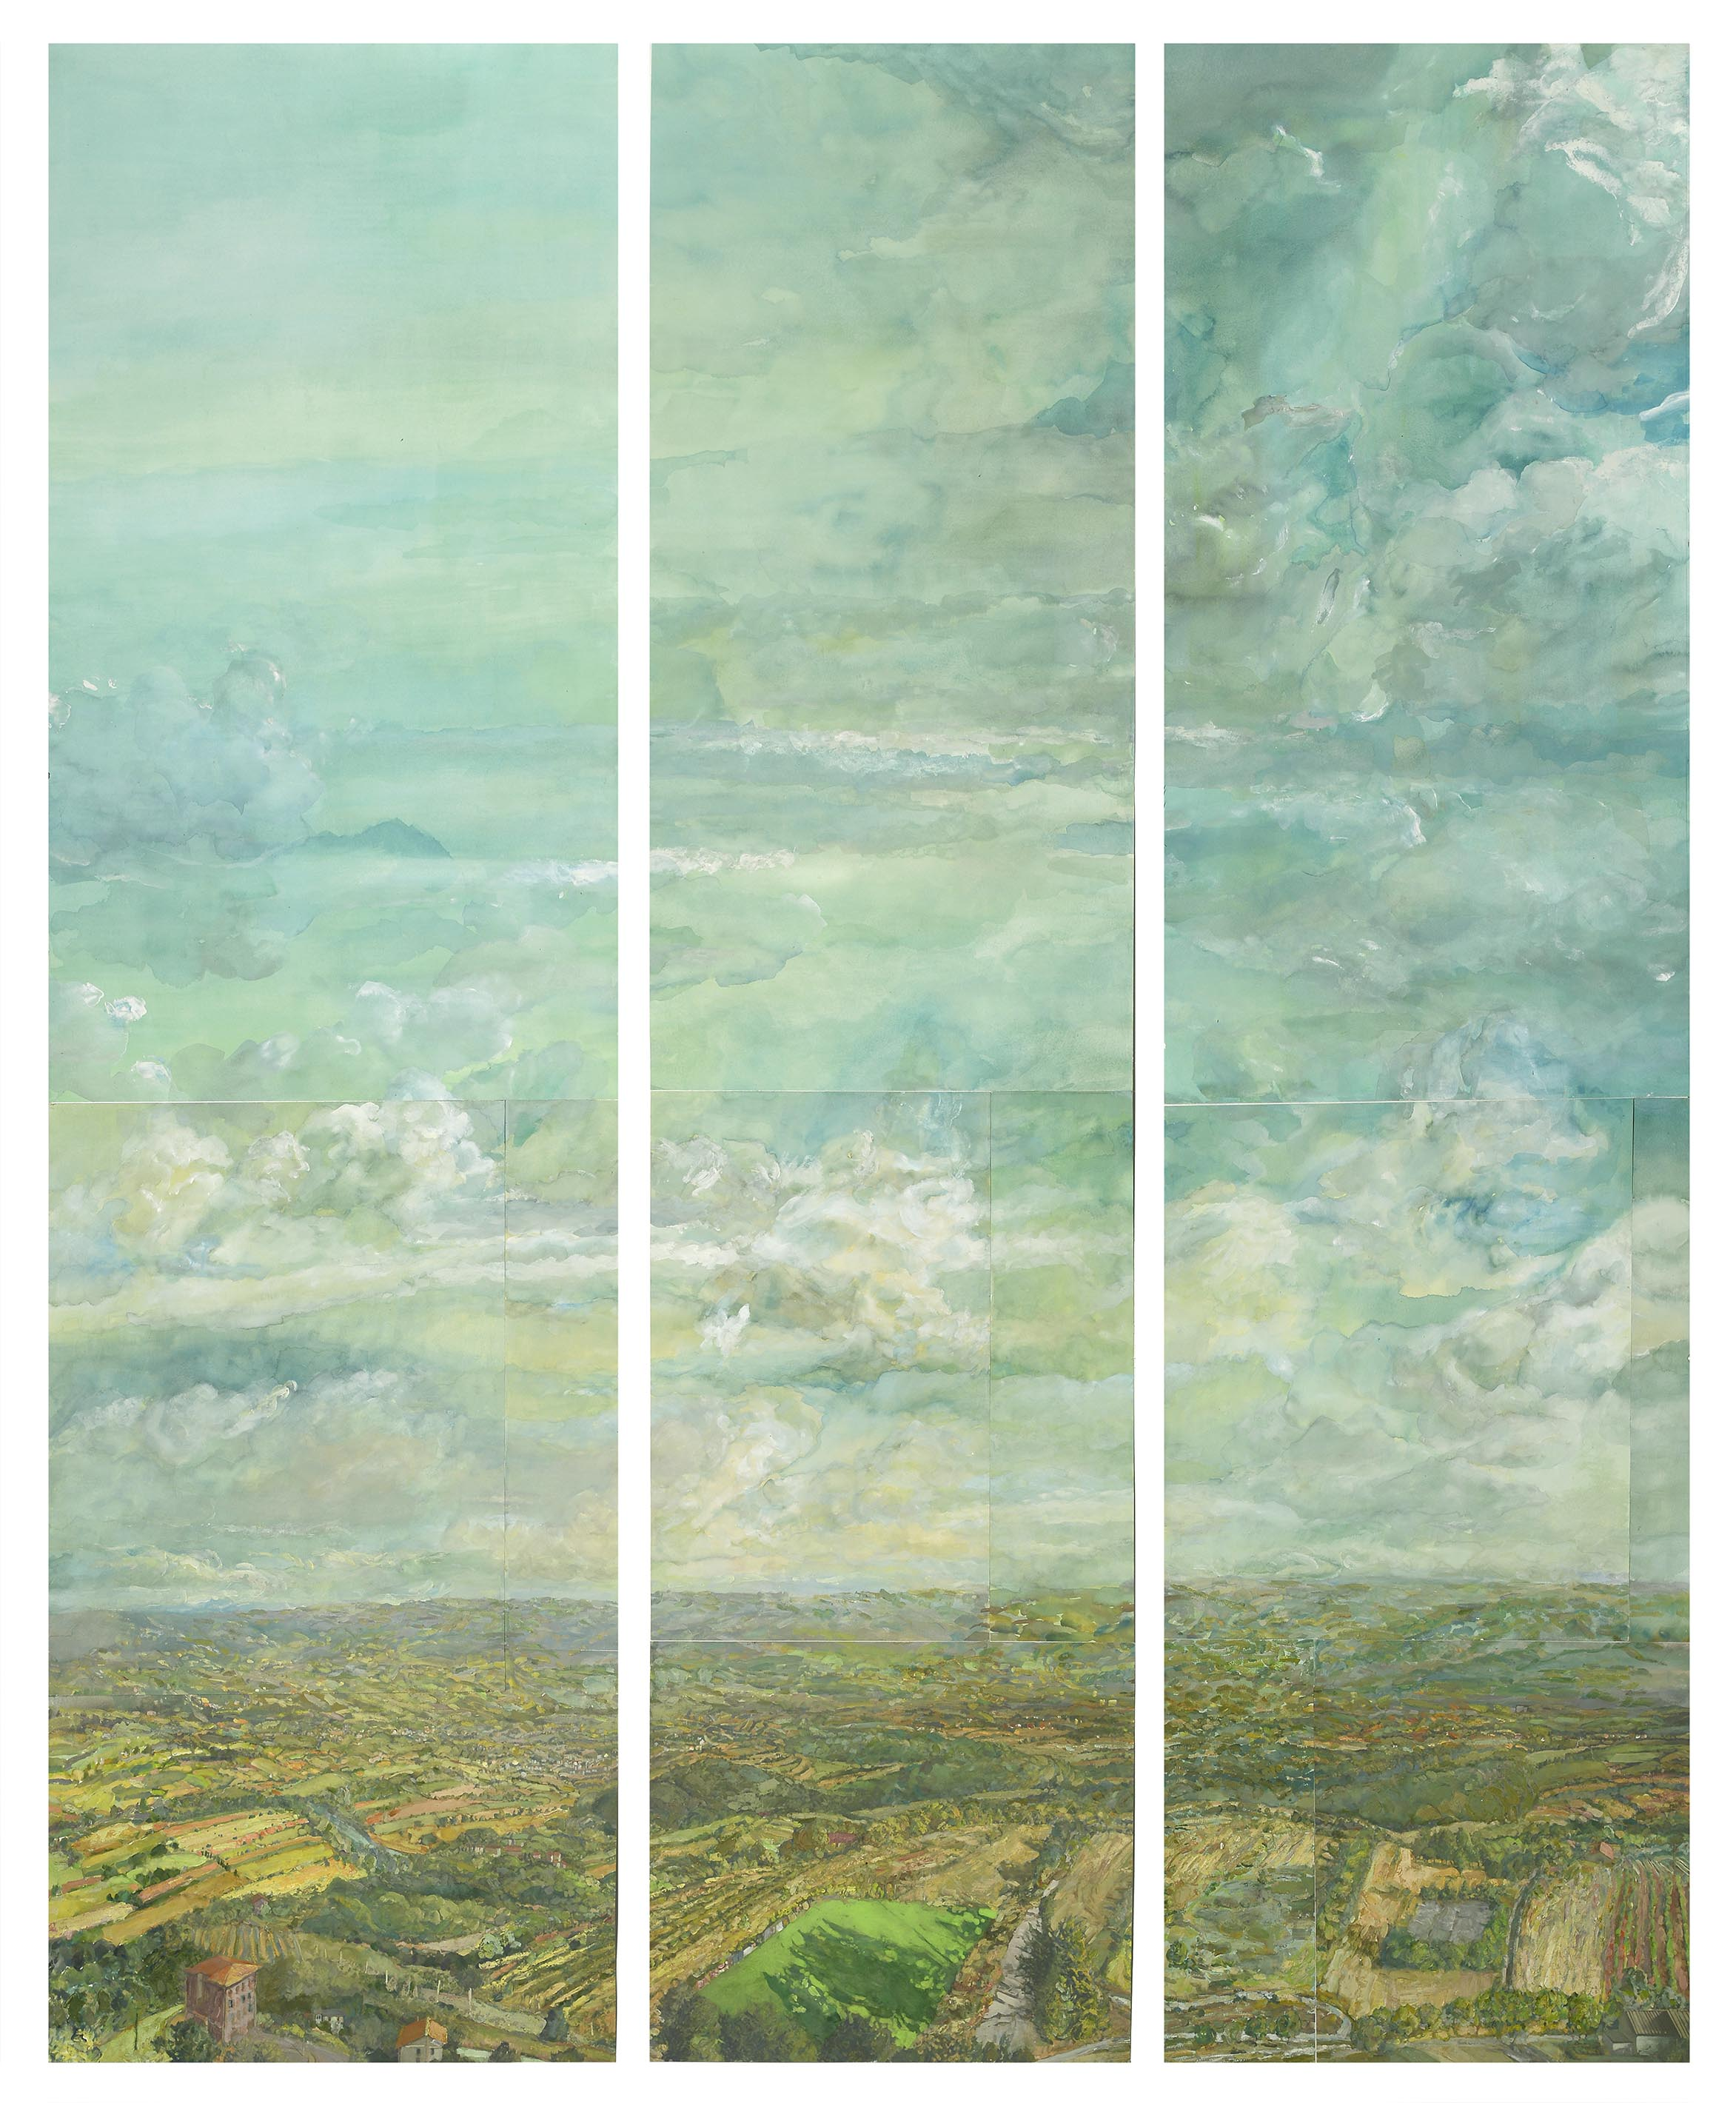 Barry Nemitt, View from Montecastello, Triptych, 2017. Gouache on paper, 83 x 67 in. Collection of Jim and Carol Trawick Foundation.